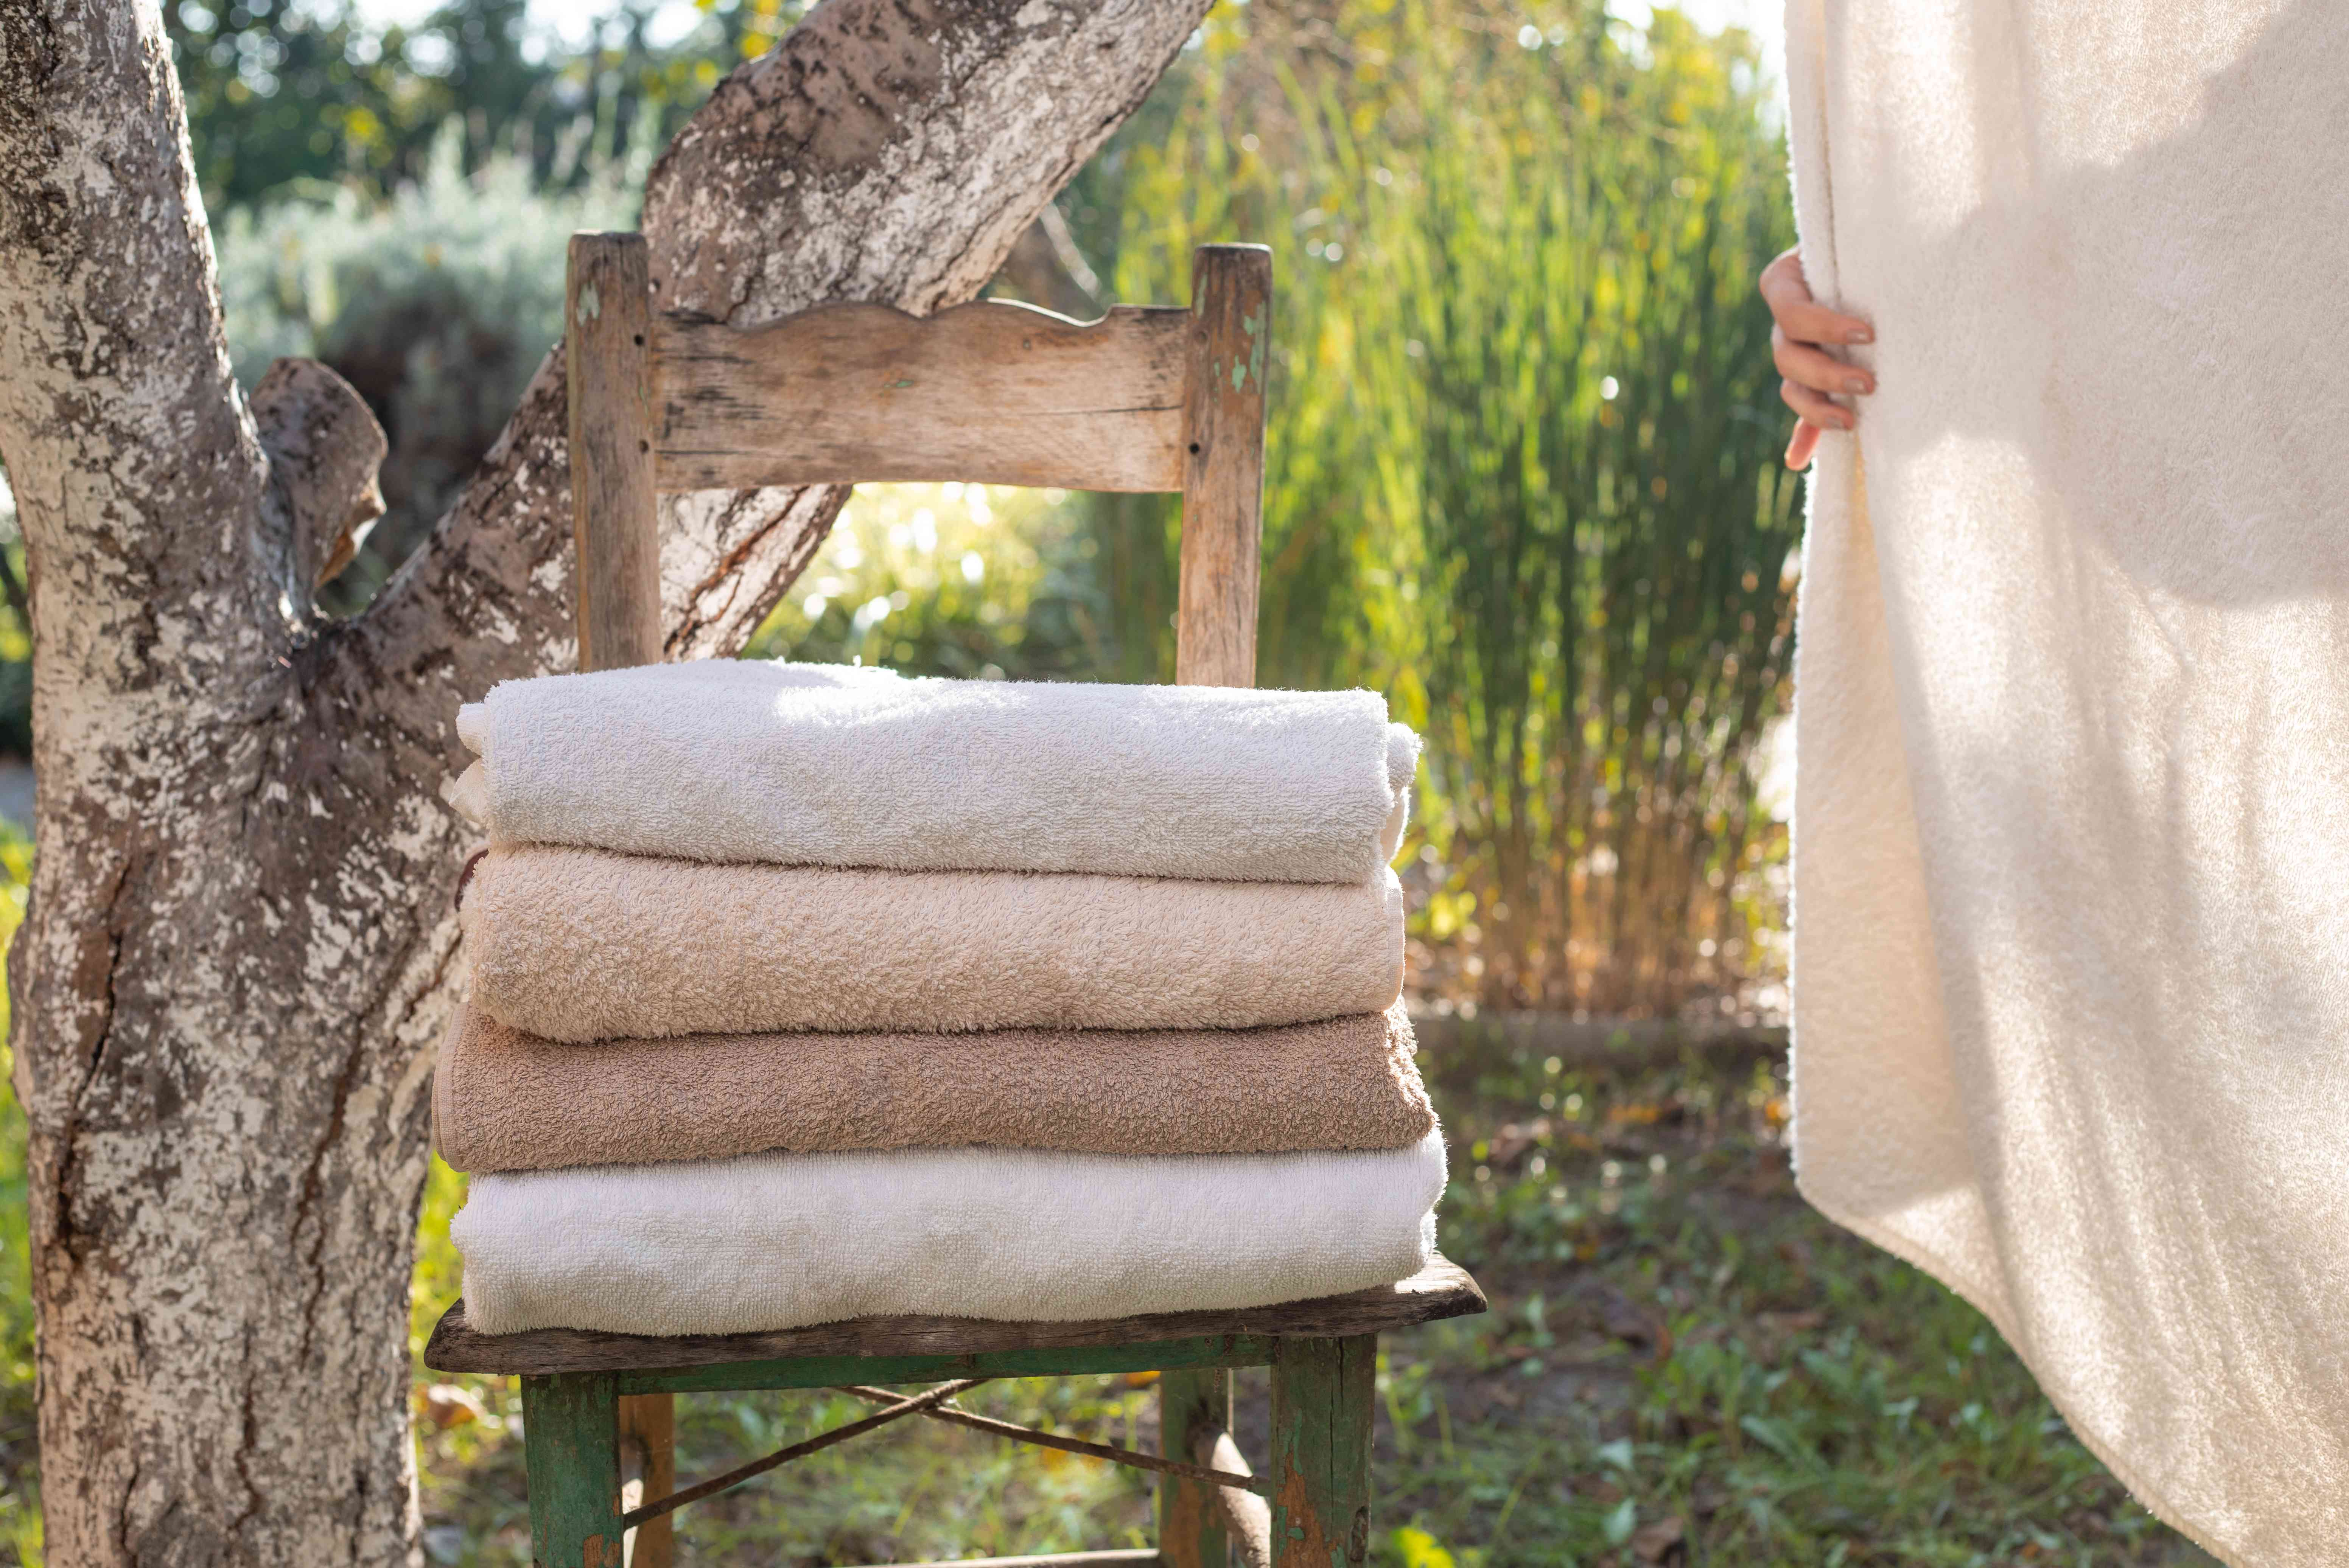 stack of towels on chair outside